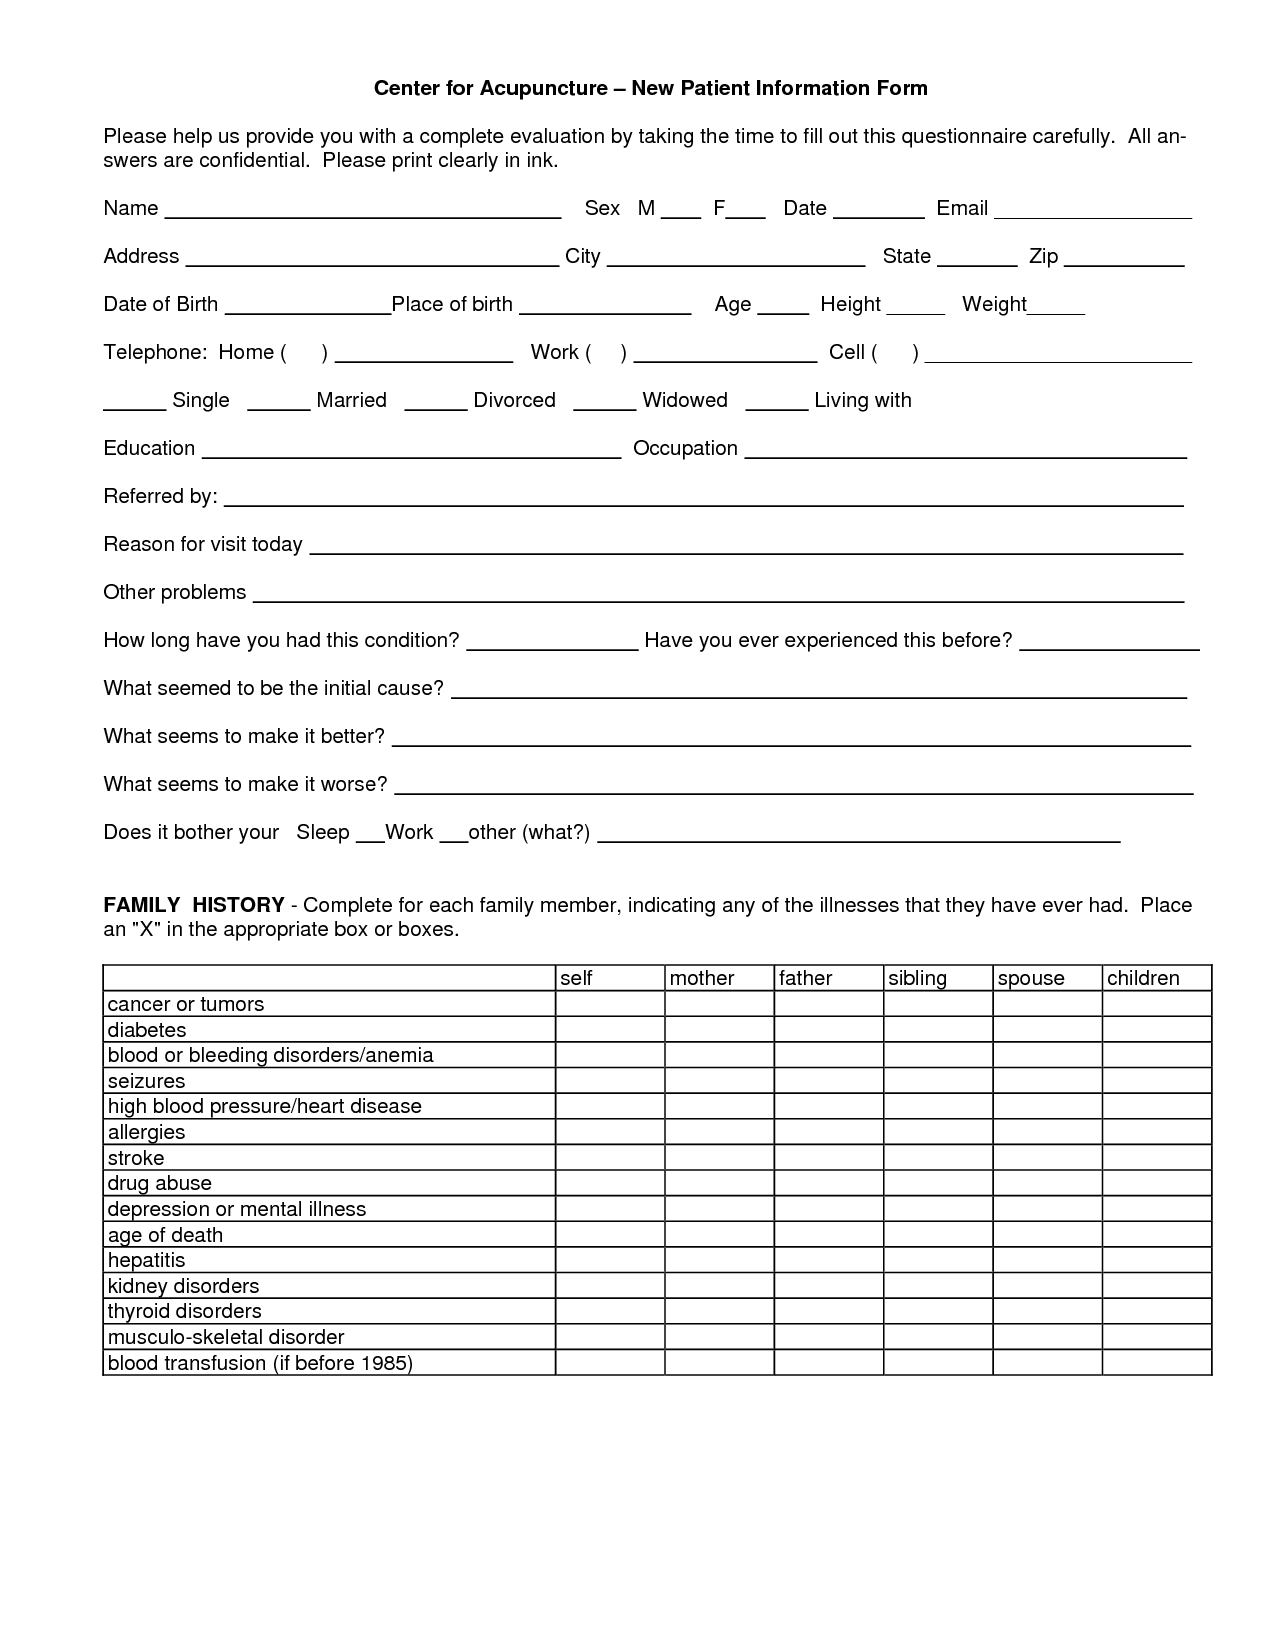 Acupuncture Patient Intake Forms | 건강 | Pinterest | Acupuncture